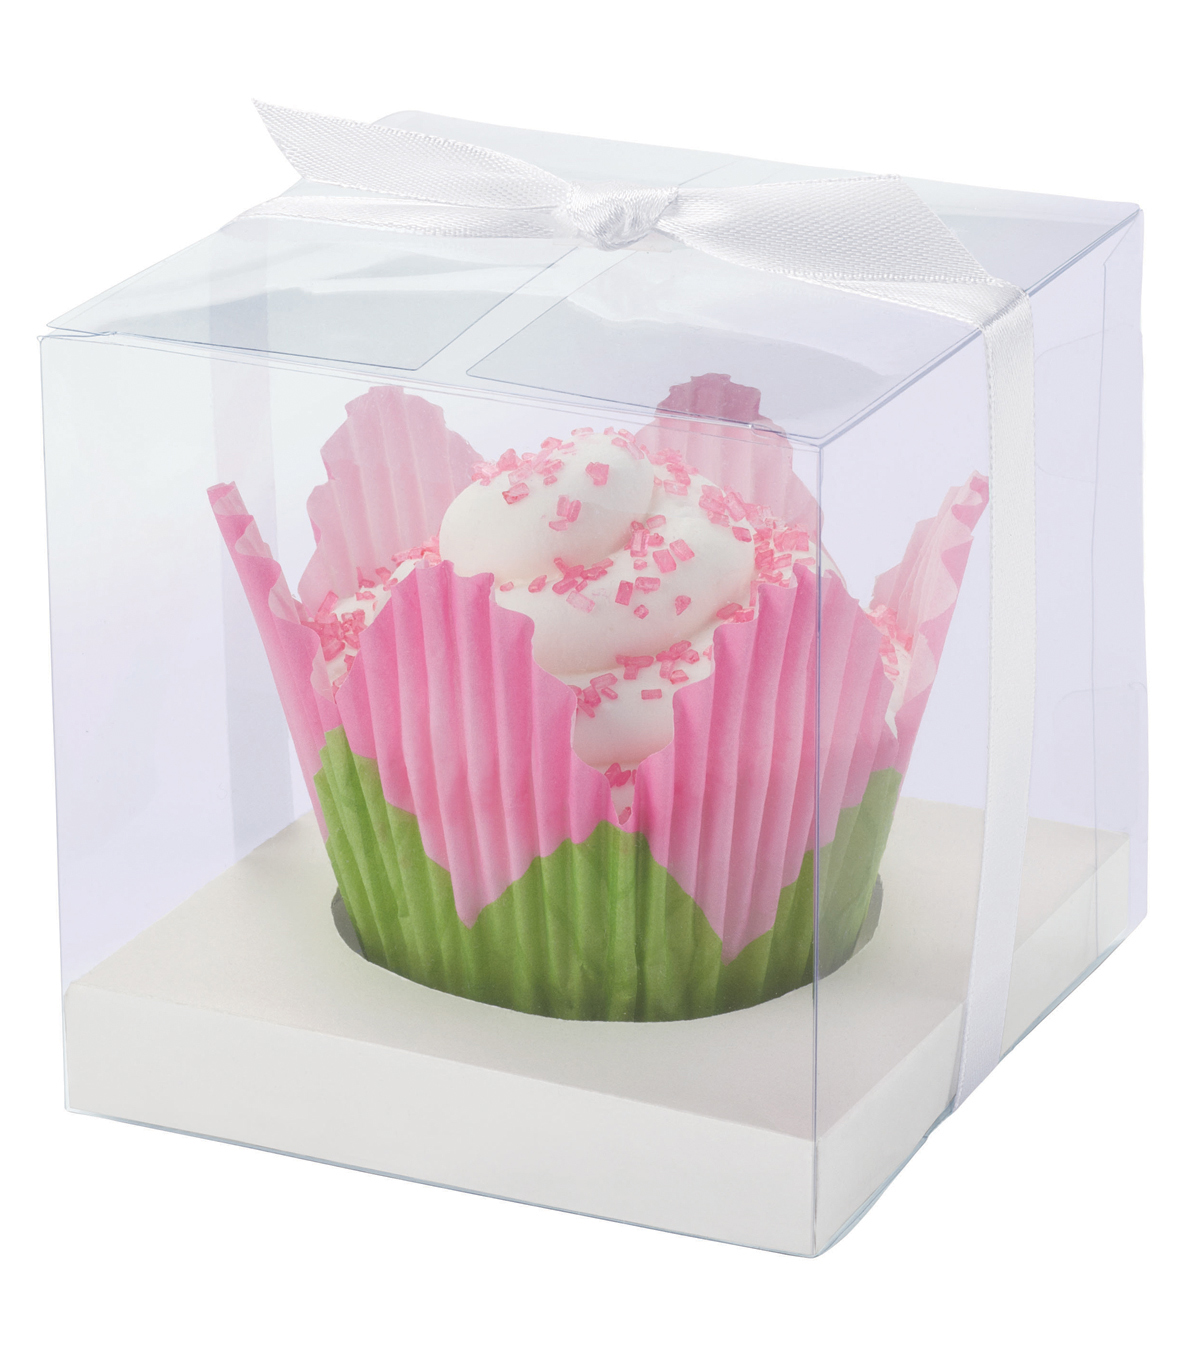 Cupcake Box 20/Pkg-Clear and White